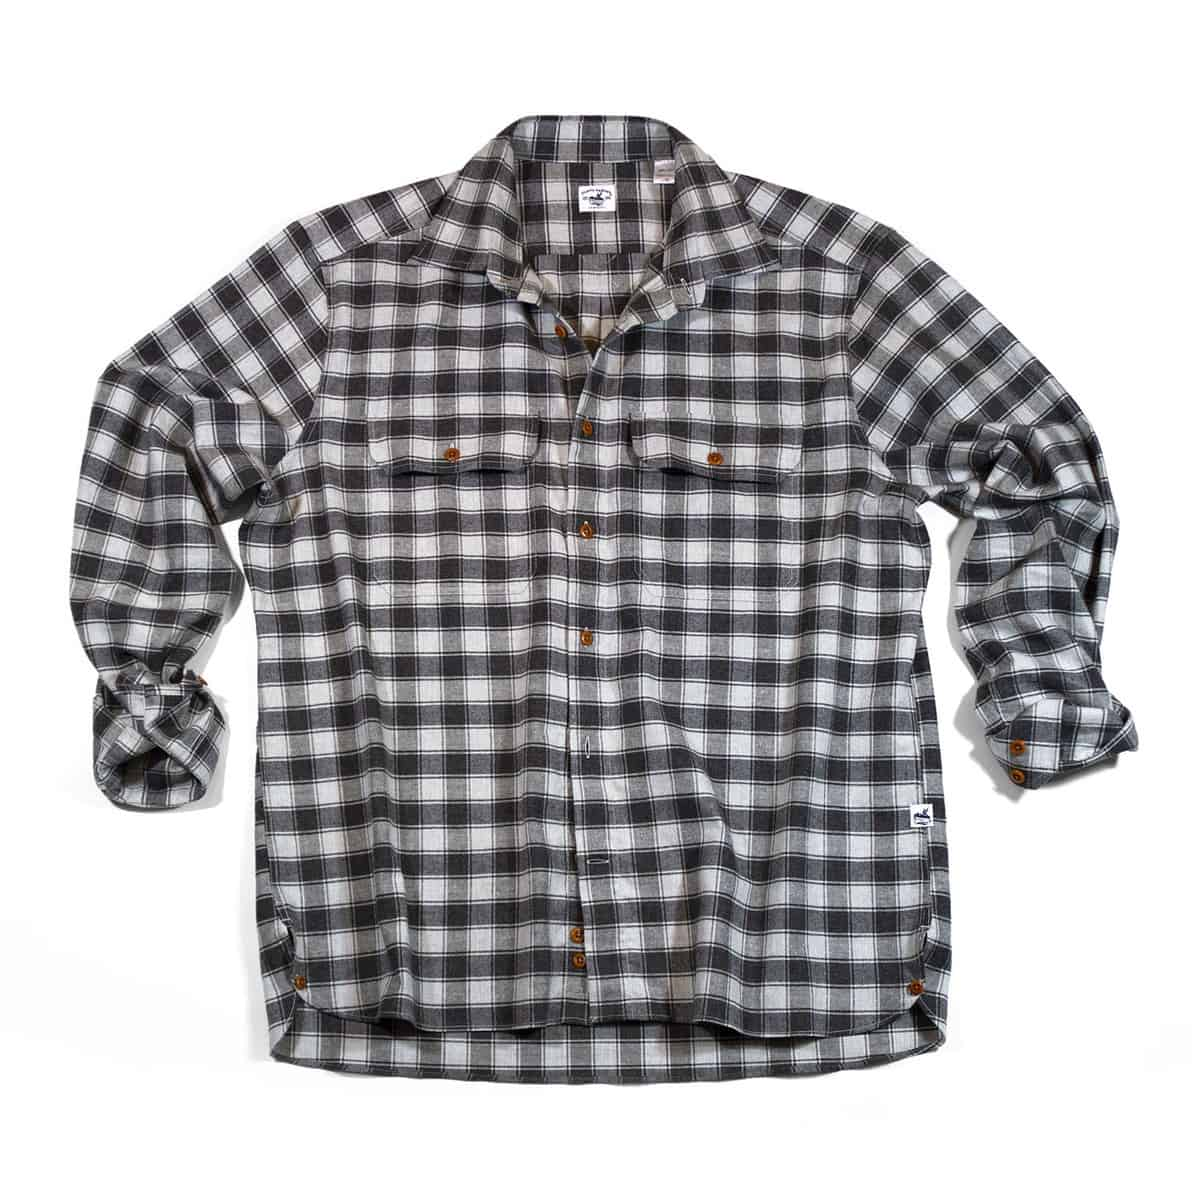 Buy The Bayman's Flannel Shirt - Light Charcoal